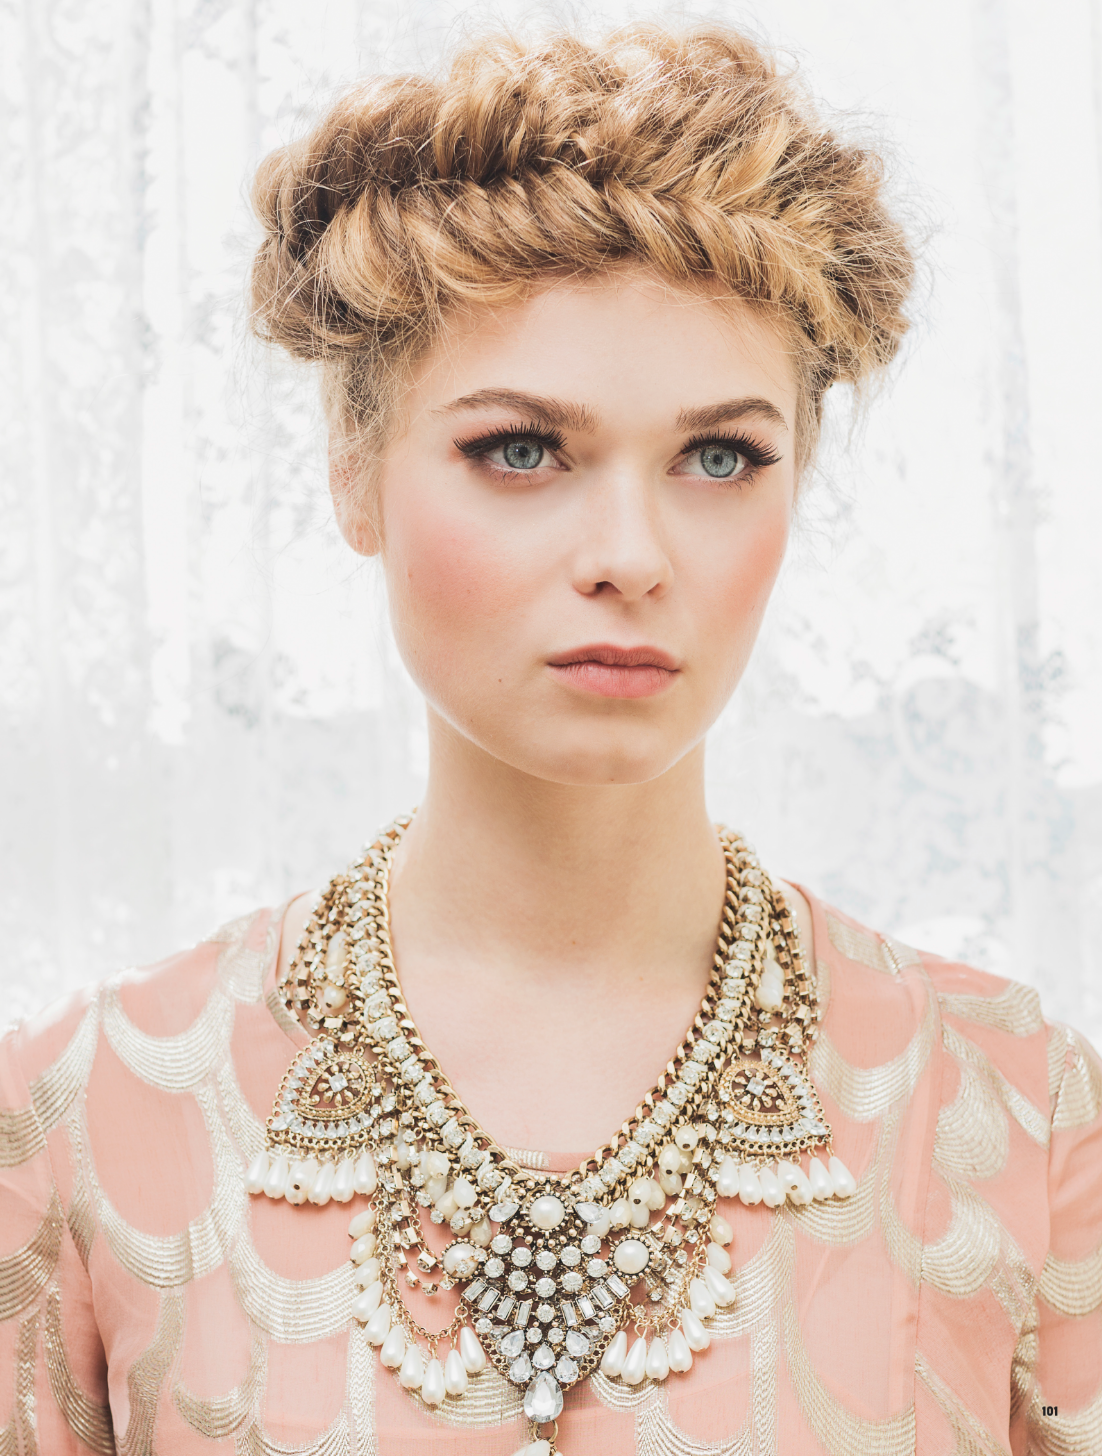 Screen Shot 2017-04-05 at 10.12.12 PM